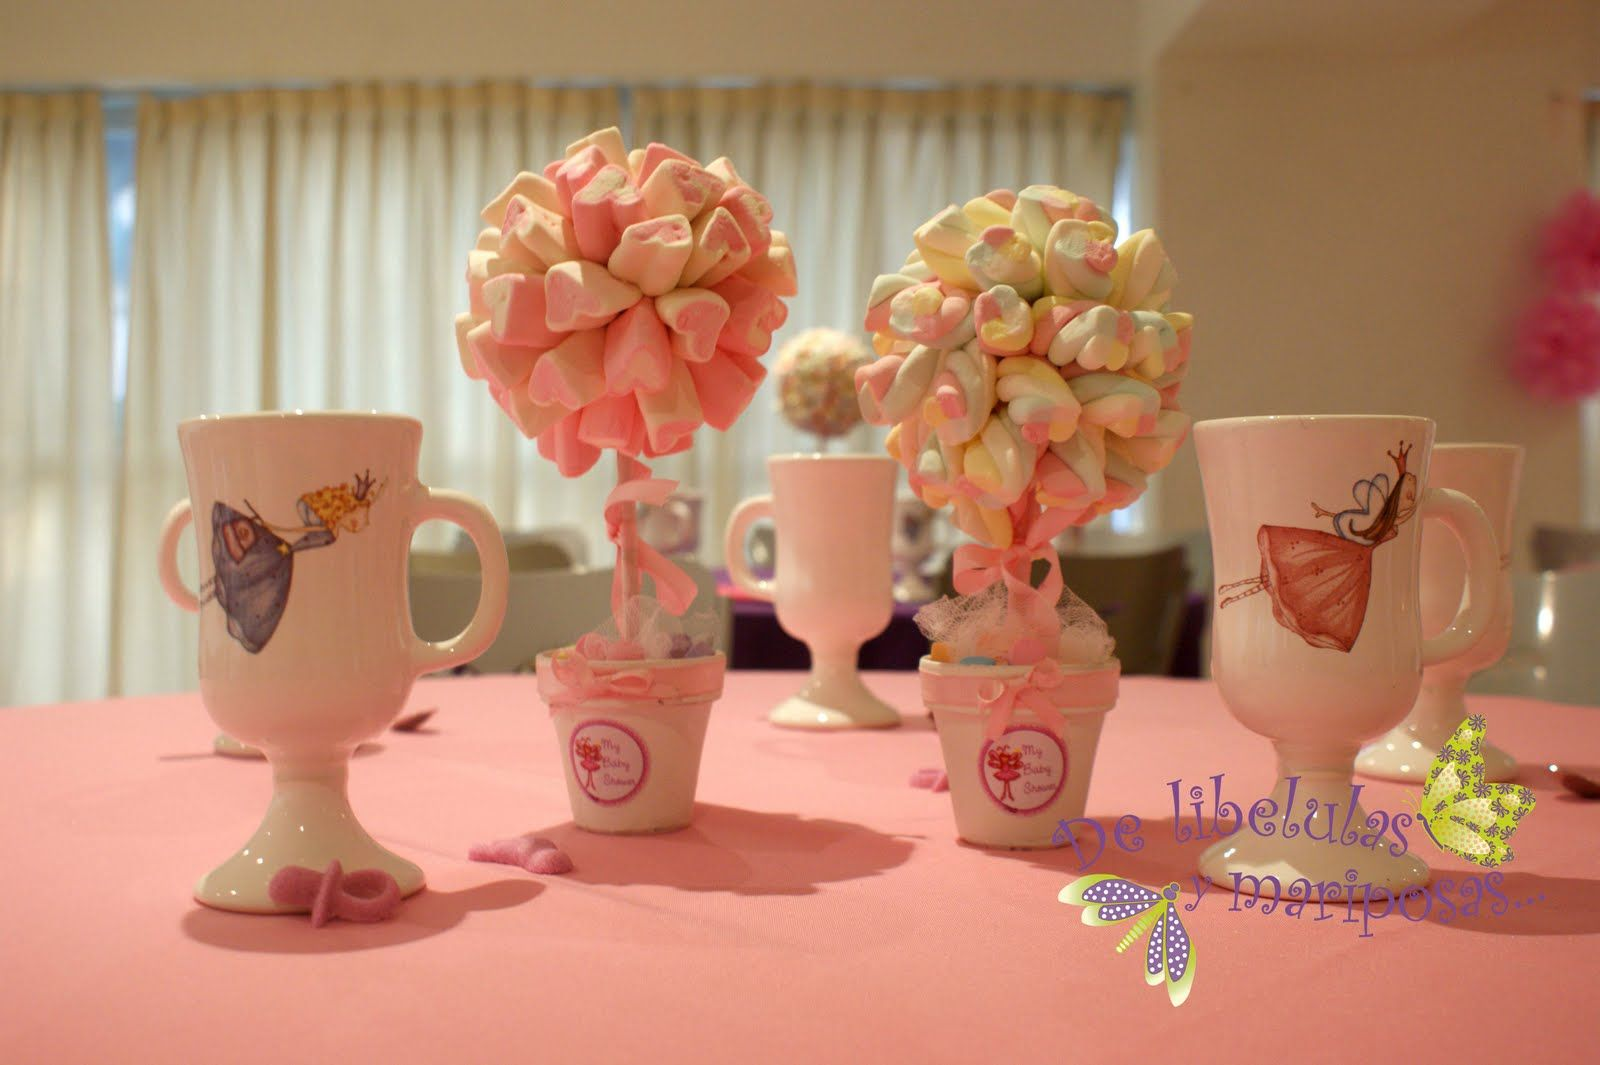 Decoraci n de baby shower con flores y mariposas para ni a - Ideas para baby shower nina ...